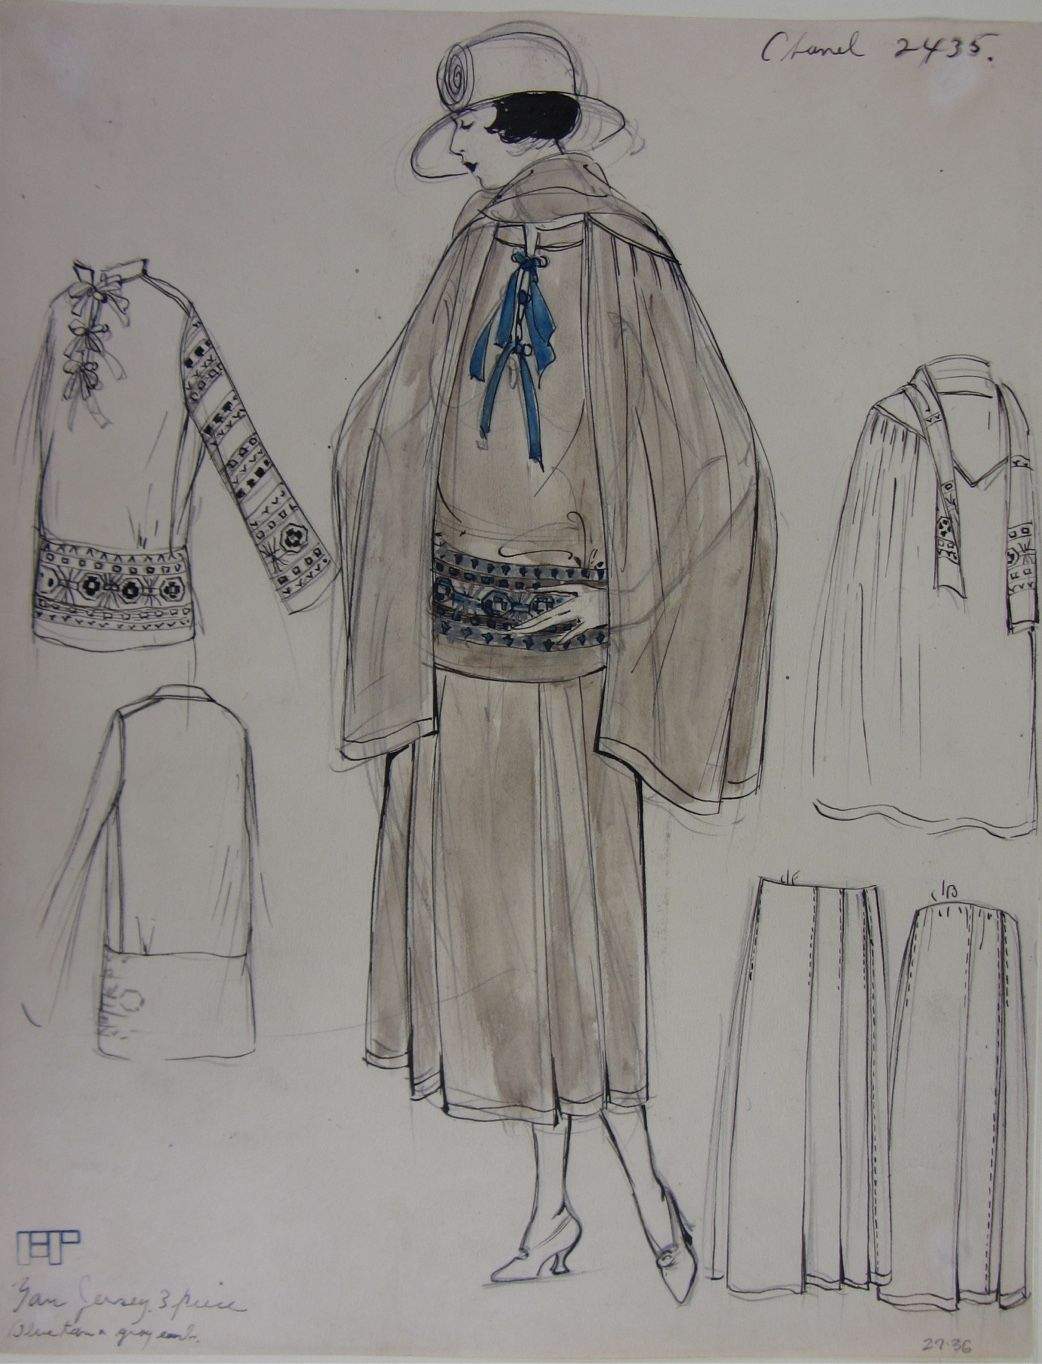 Drawing of a CHANEL haute couture outfit with traditional Russian embroideries